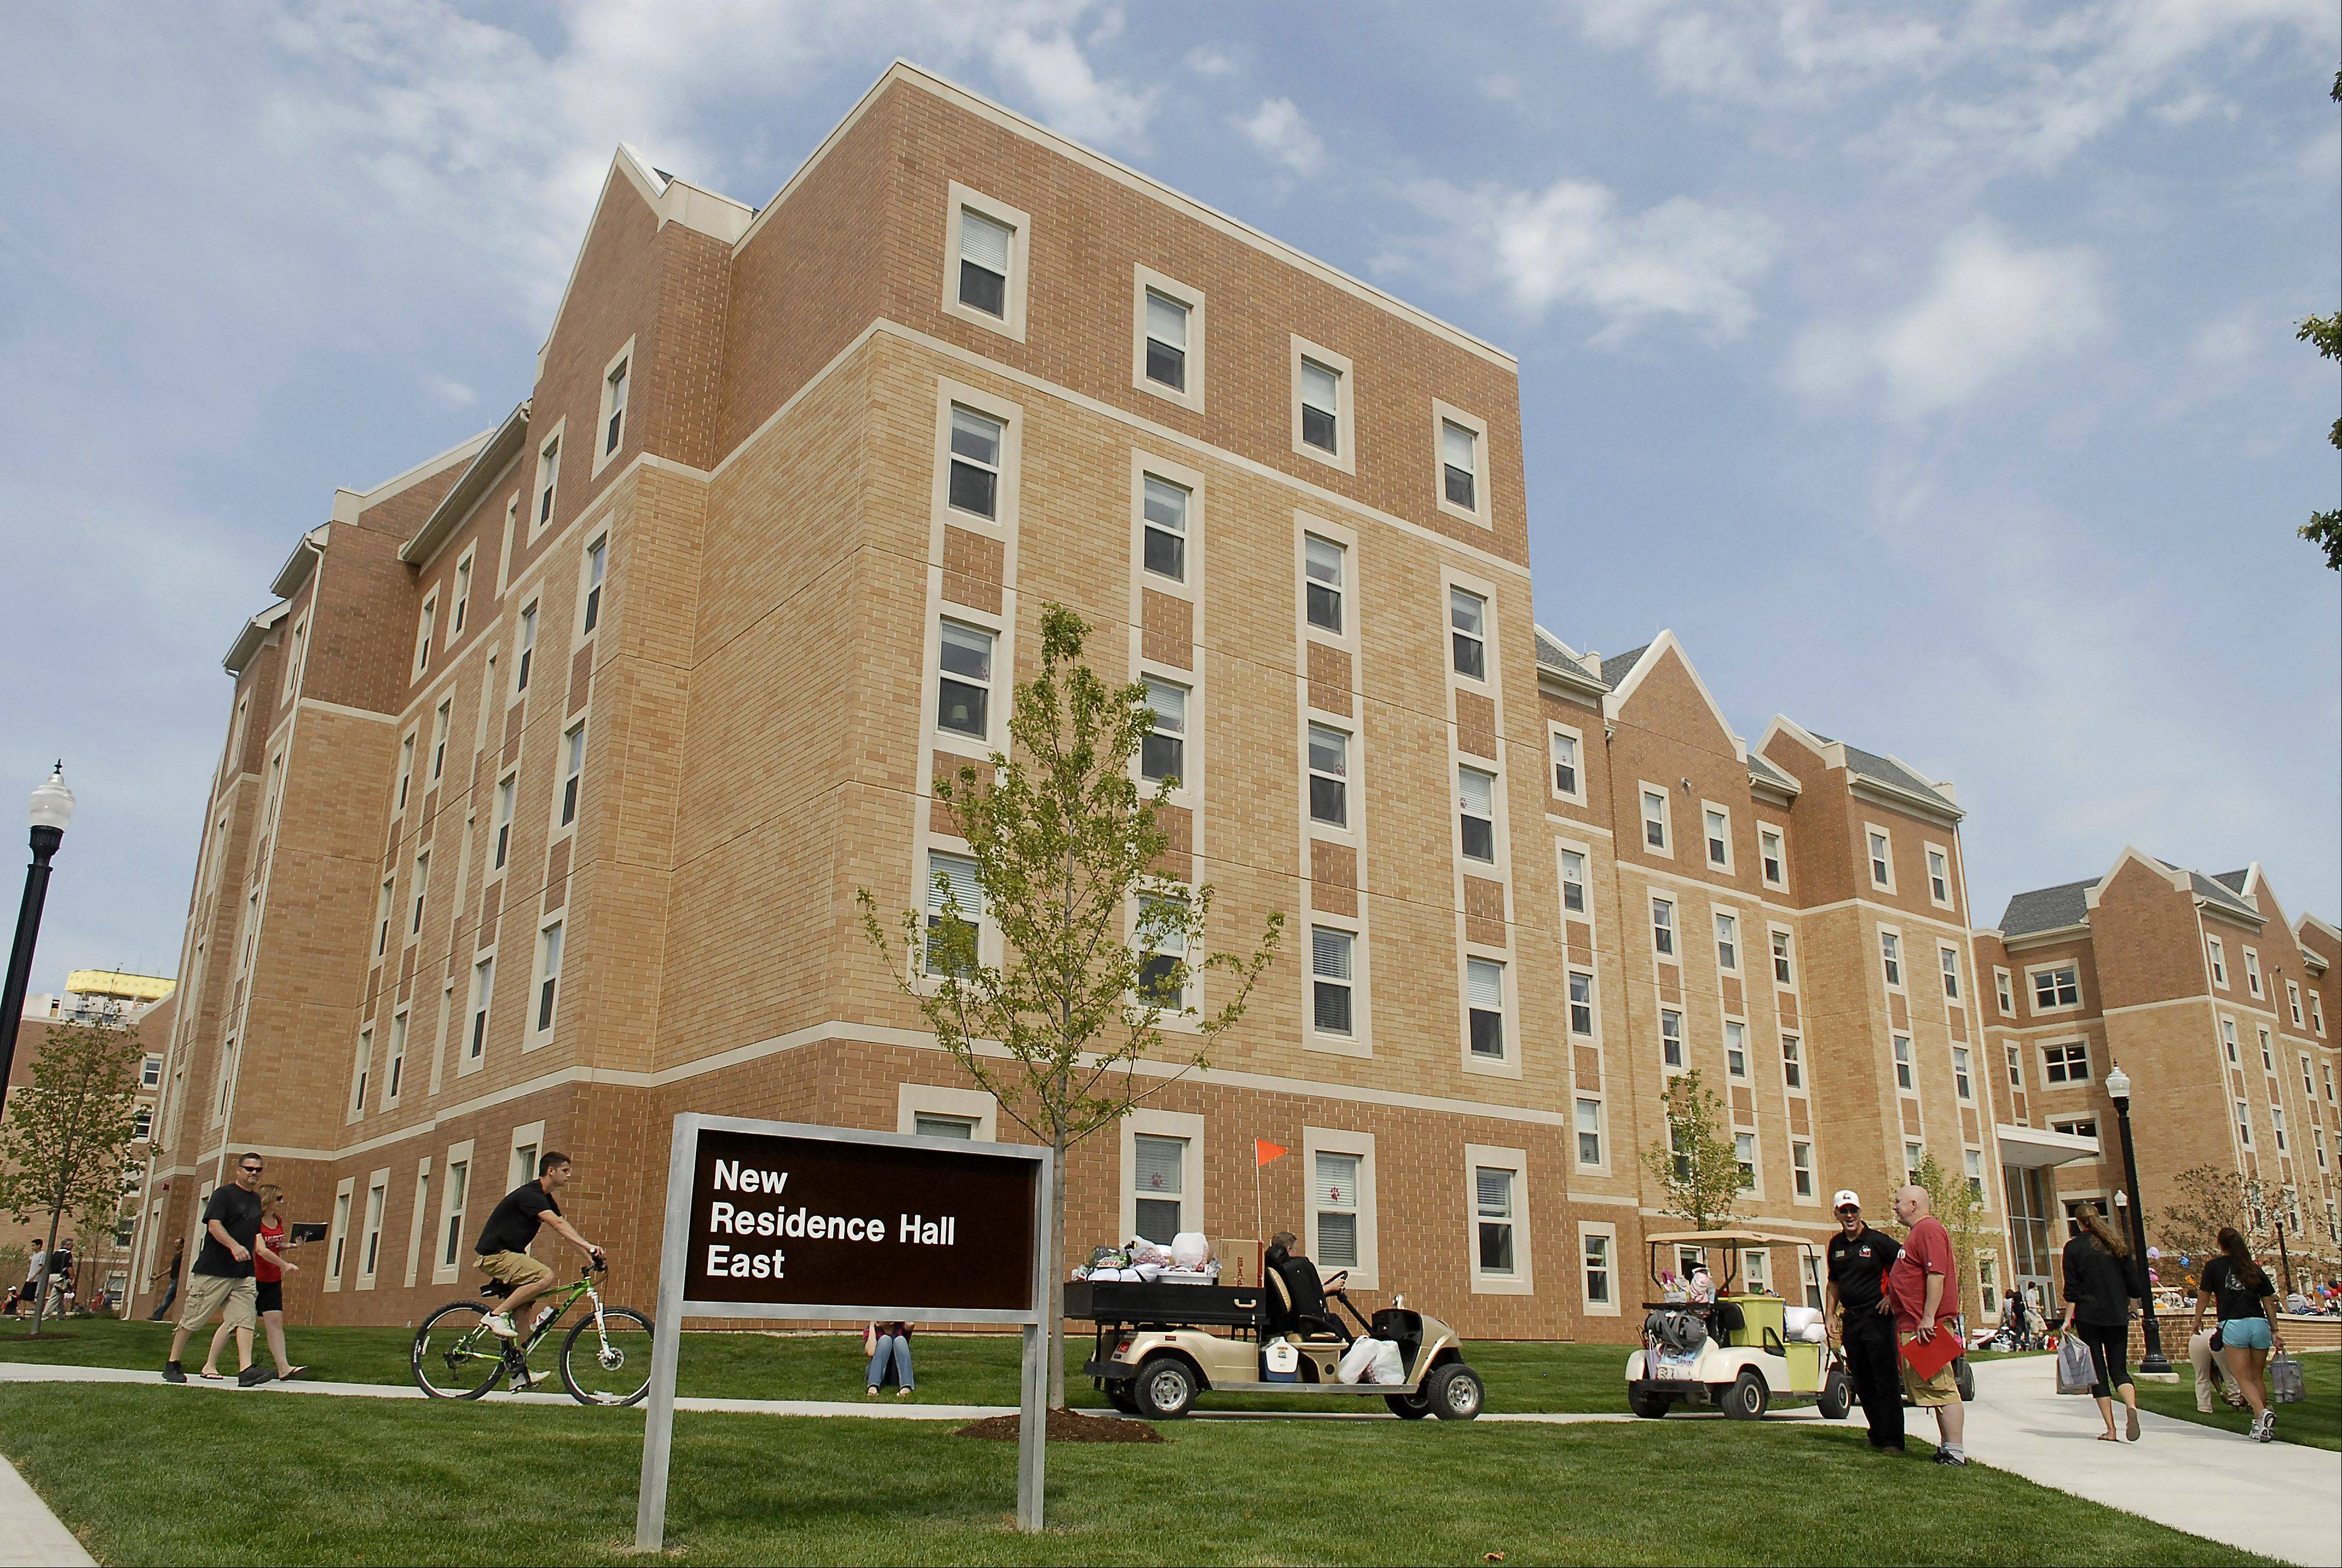 New Residence Hall East at Northern Illinois University in DeKalb on Thursday, August 23.